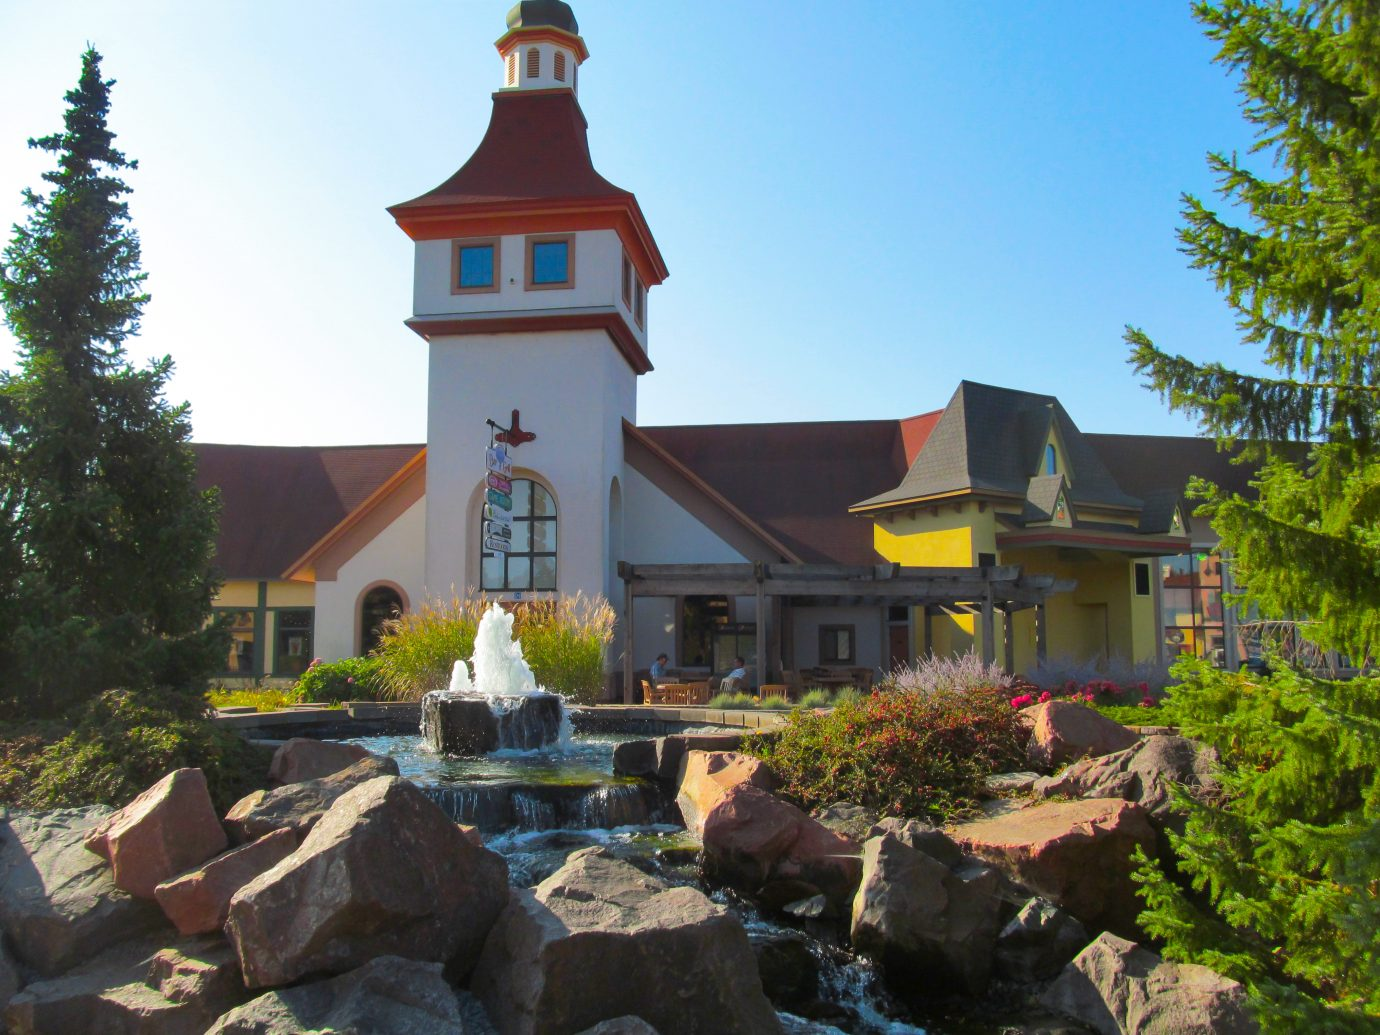 Picturesque landscape of amazing tourist town Frankenmuth in Michigan on a sunny day.